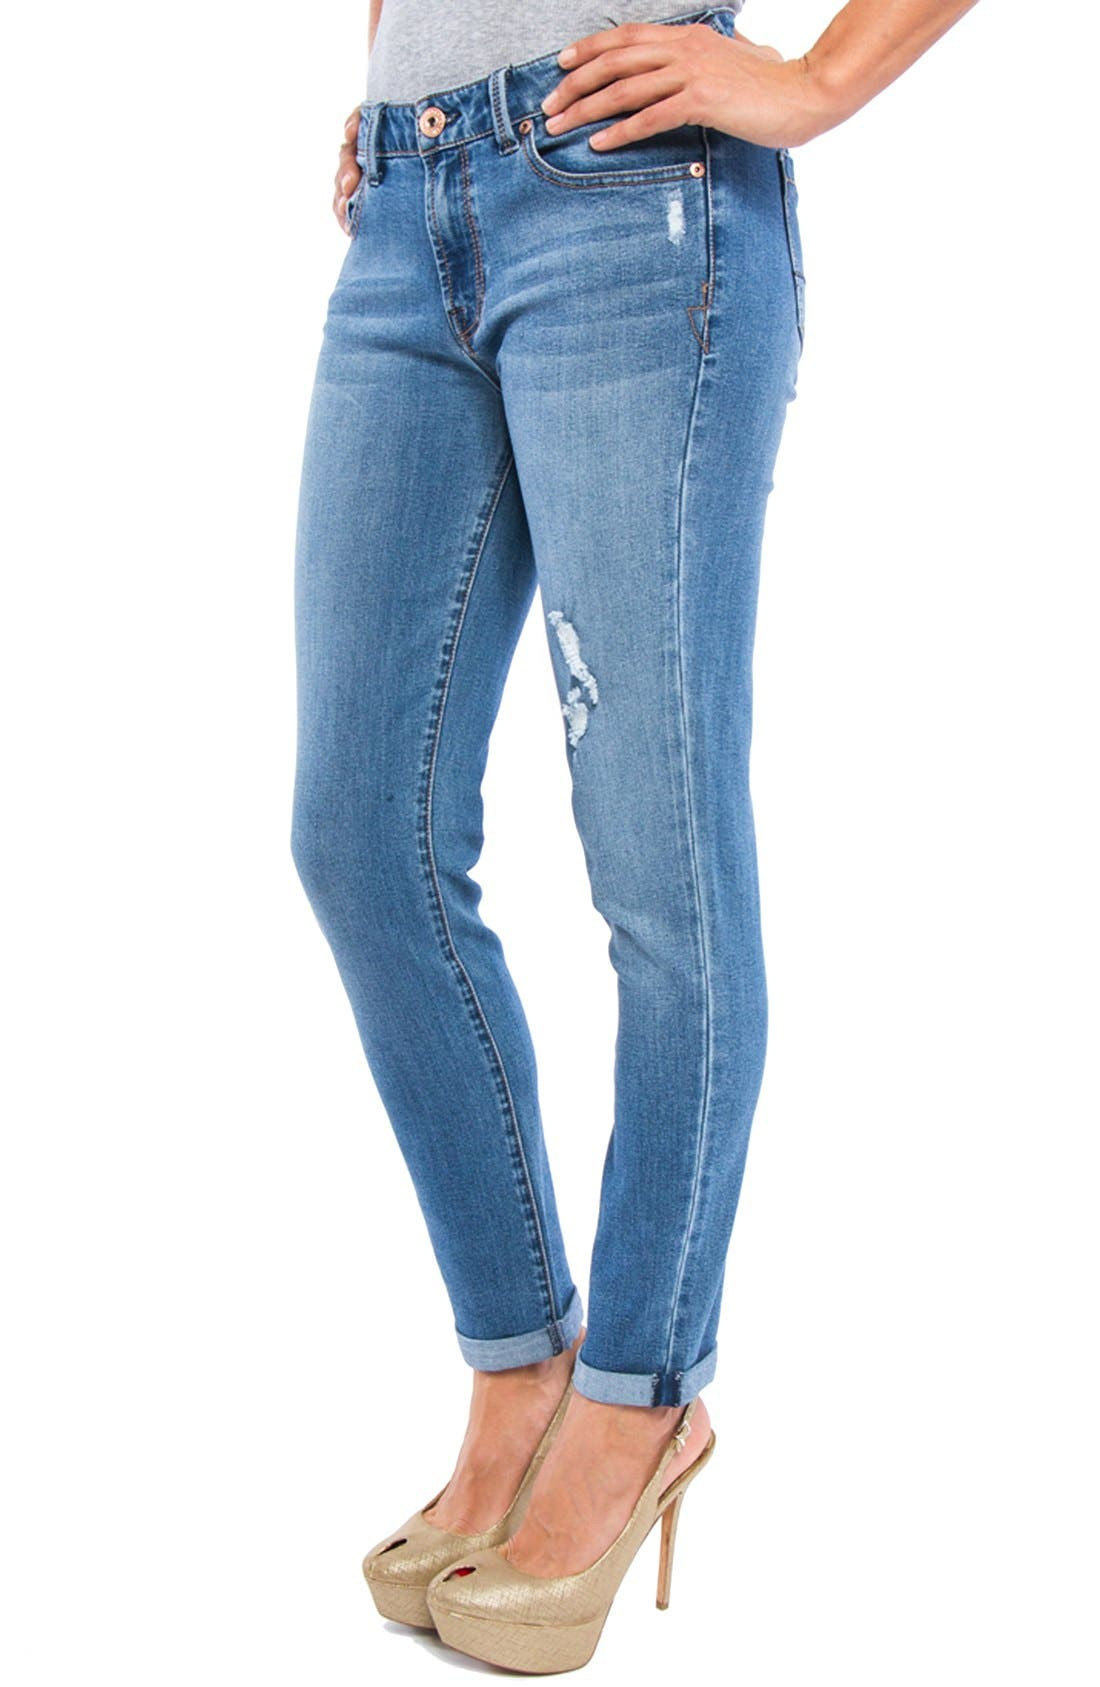 LIVERPOOL, Jeans Company 'Tory' Distressed Girlfriend Jeans, Alternate thumbnail 3, color, 401